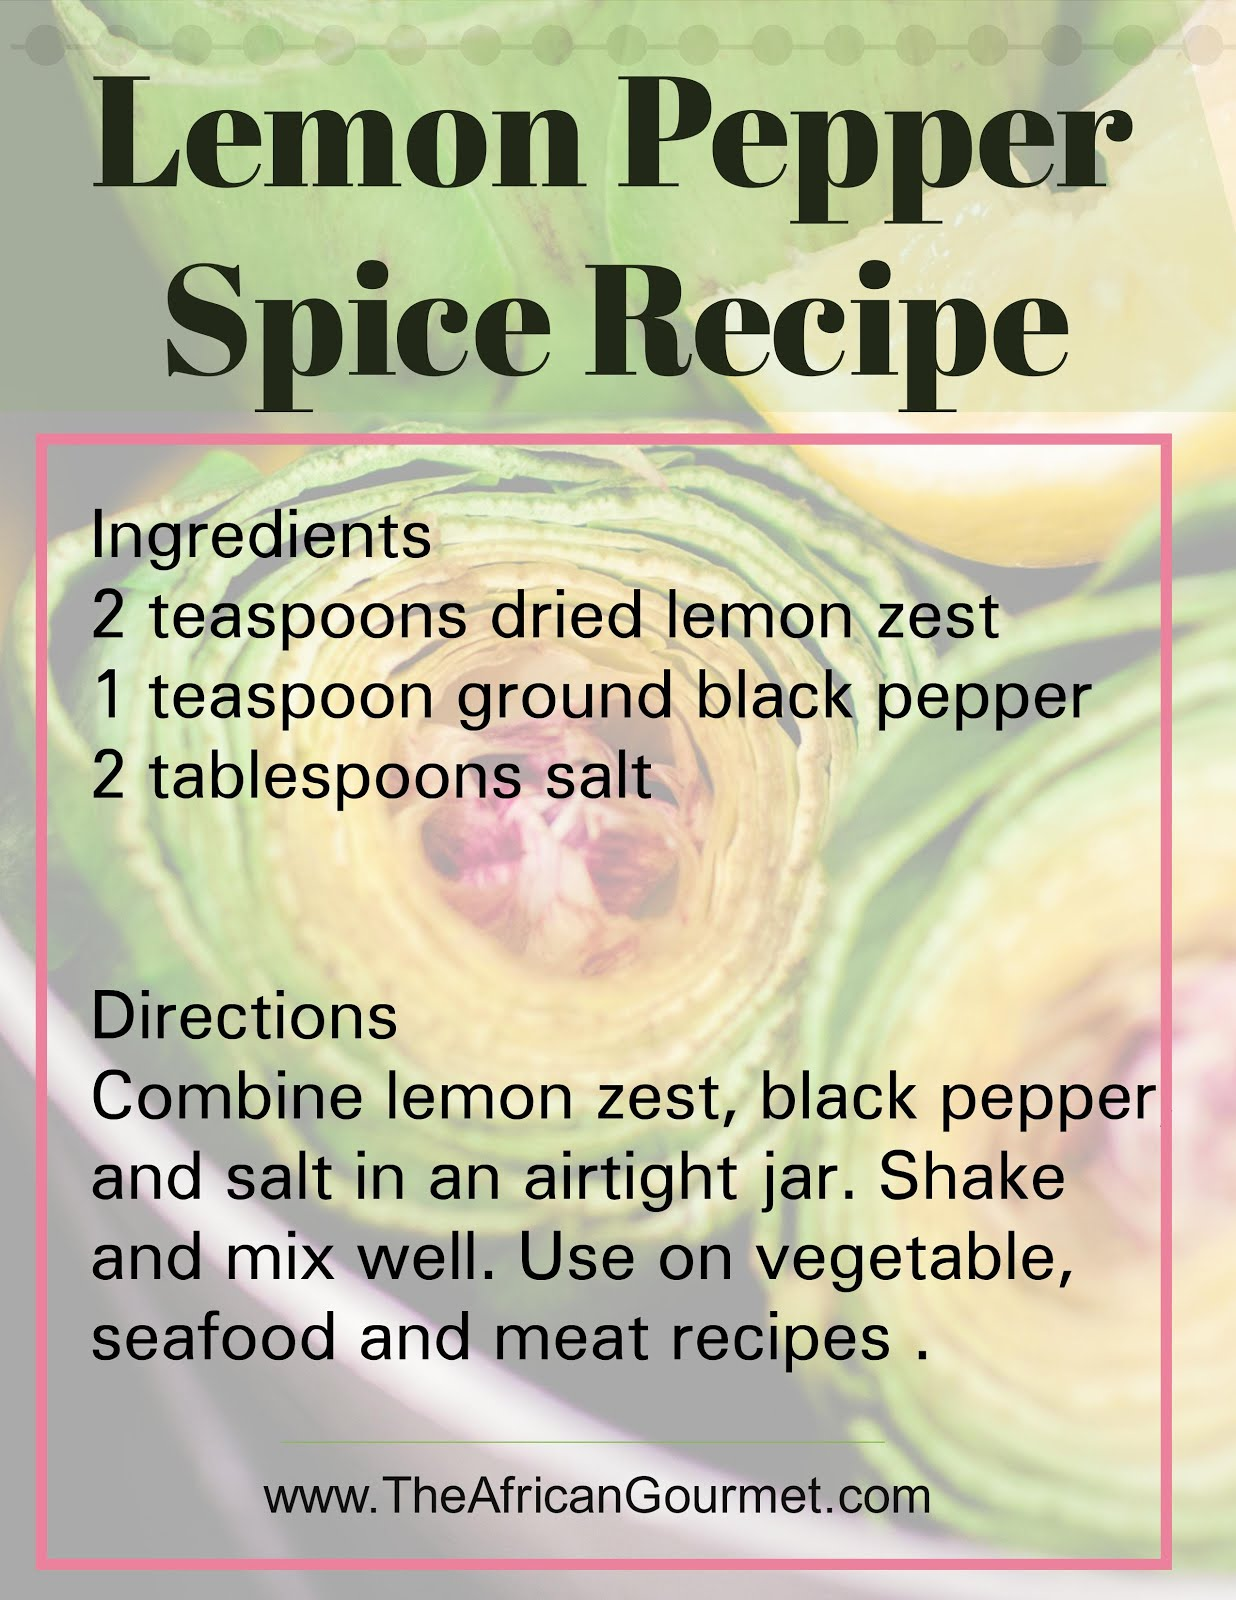 Easy spice recipe